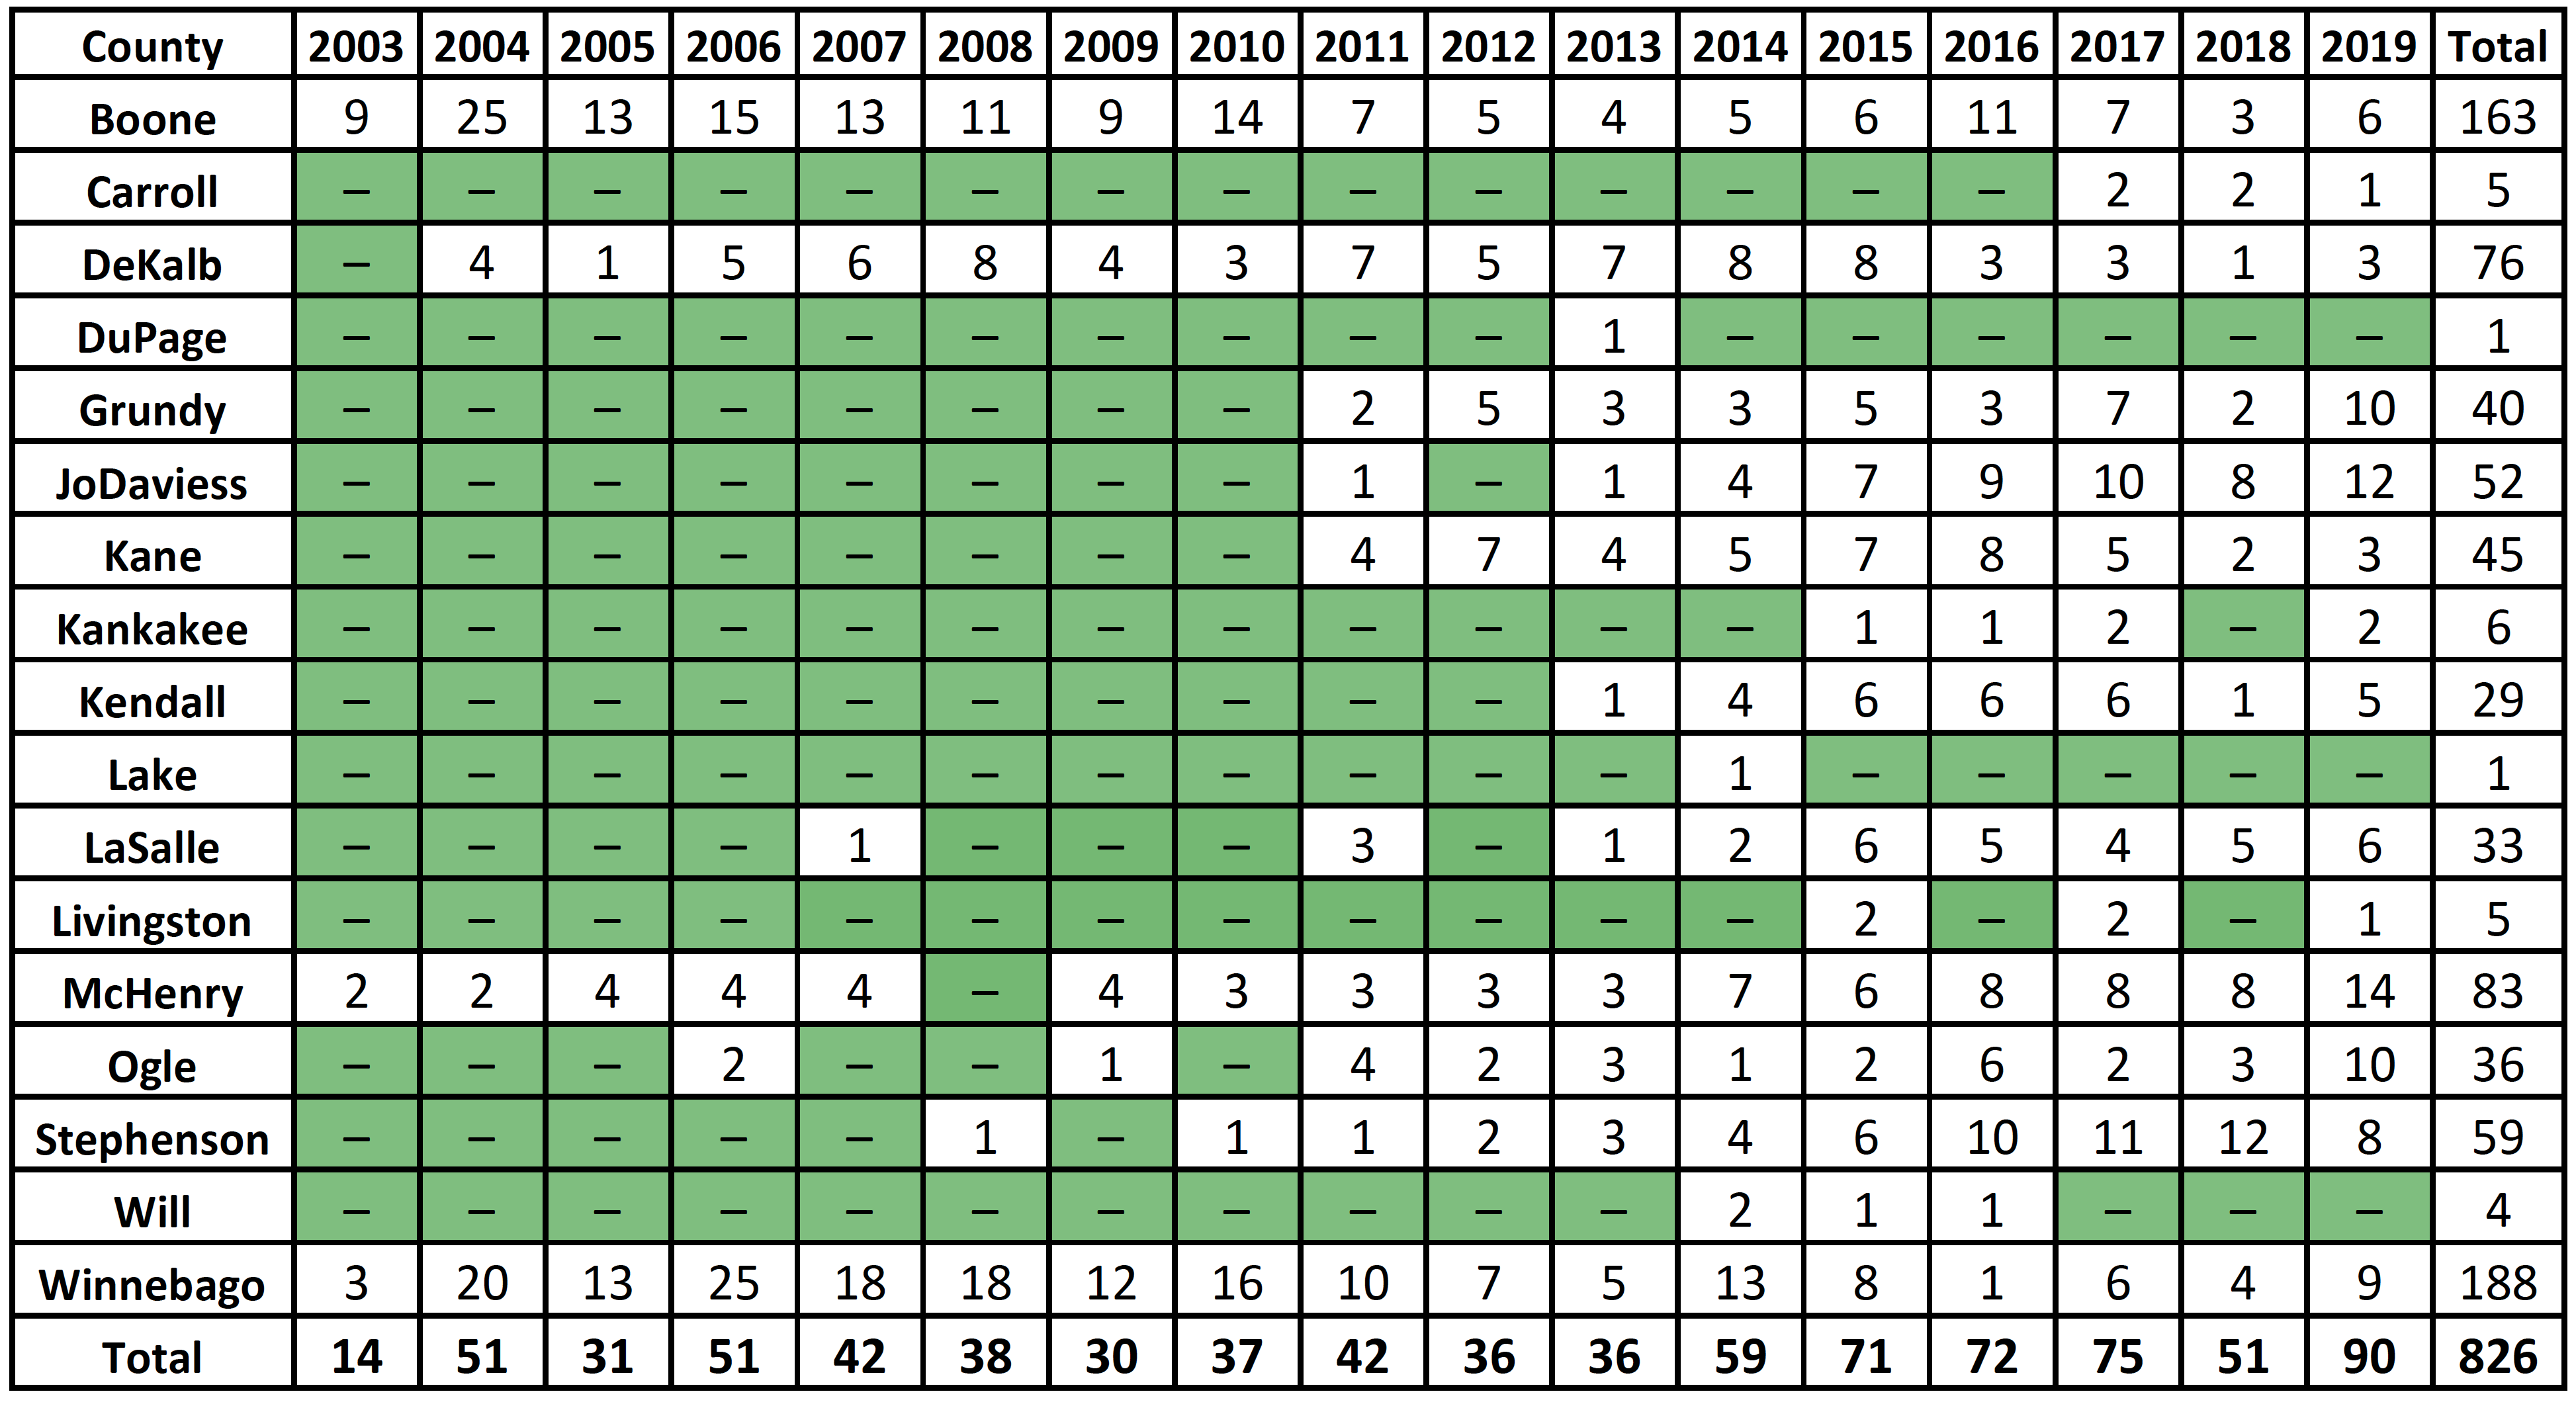 A table indicating the number of Chronic Wasting Disease positive deer by sampling year.